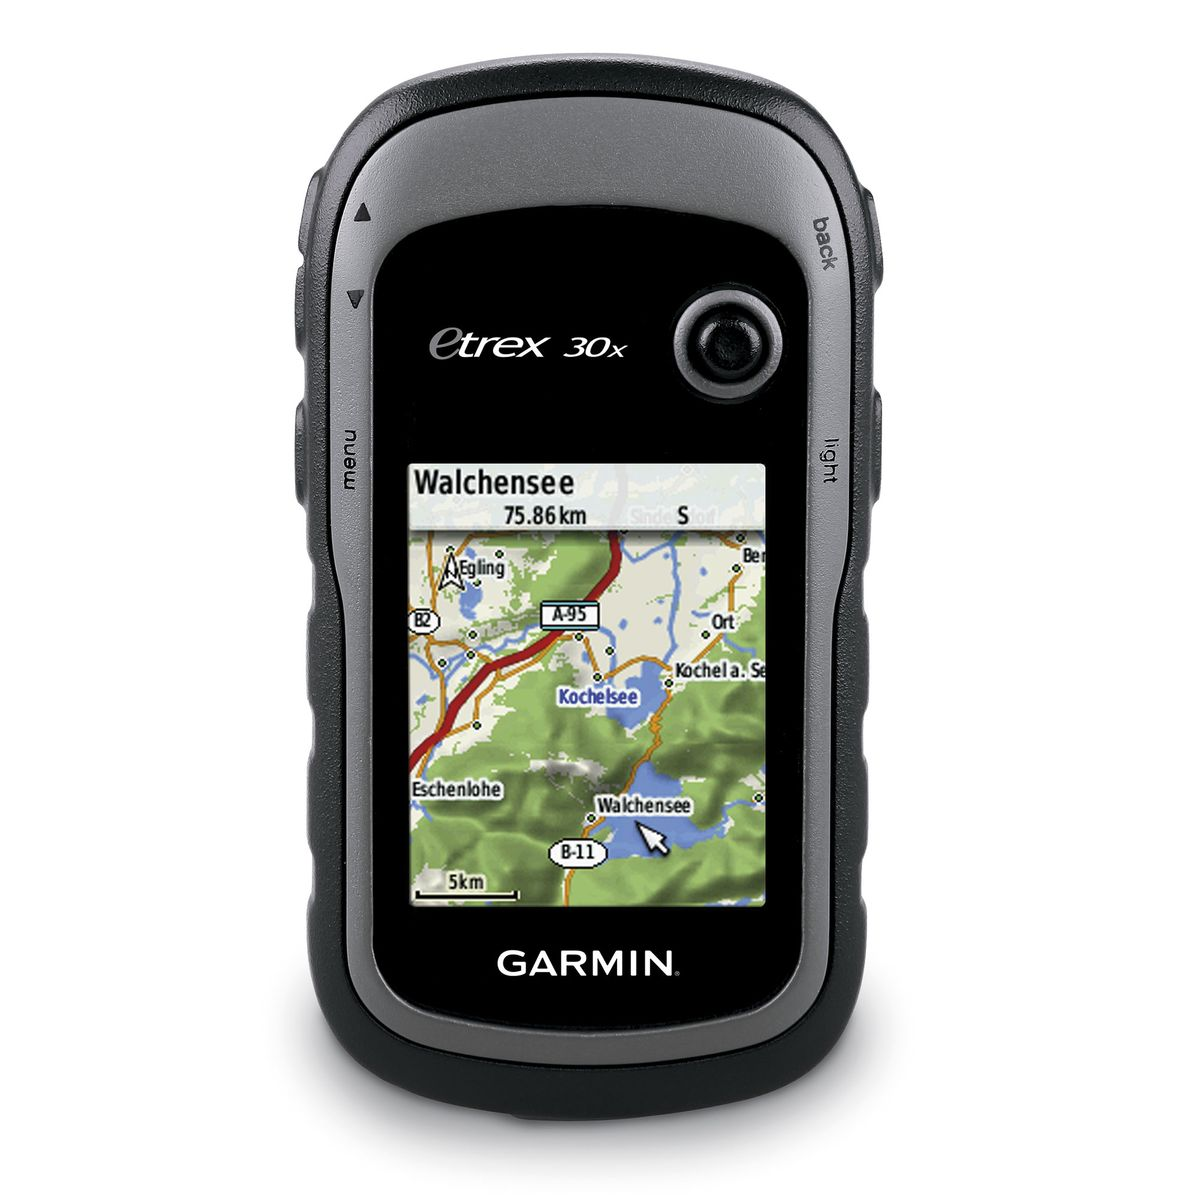 eTrex 30x GPS navigation device incl. TopoActive map of Western Europe